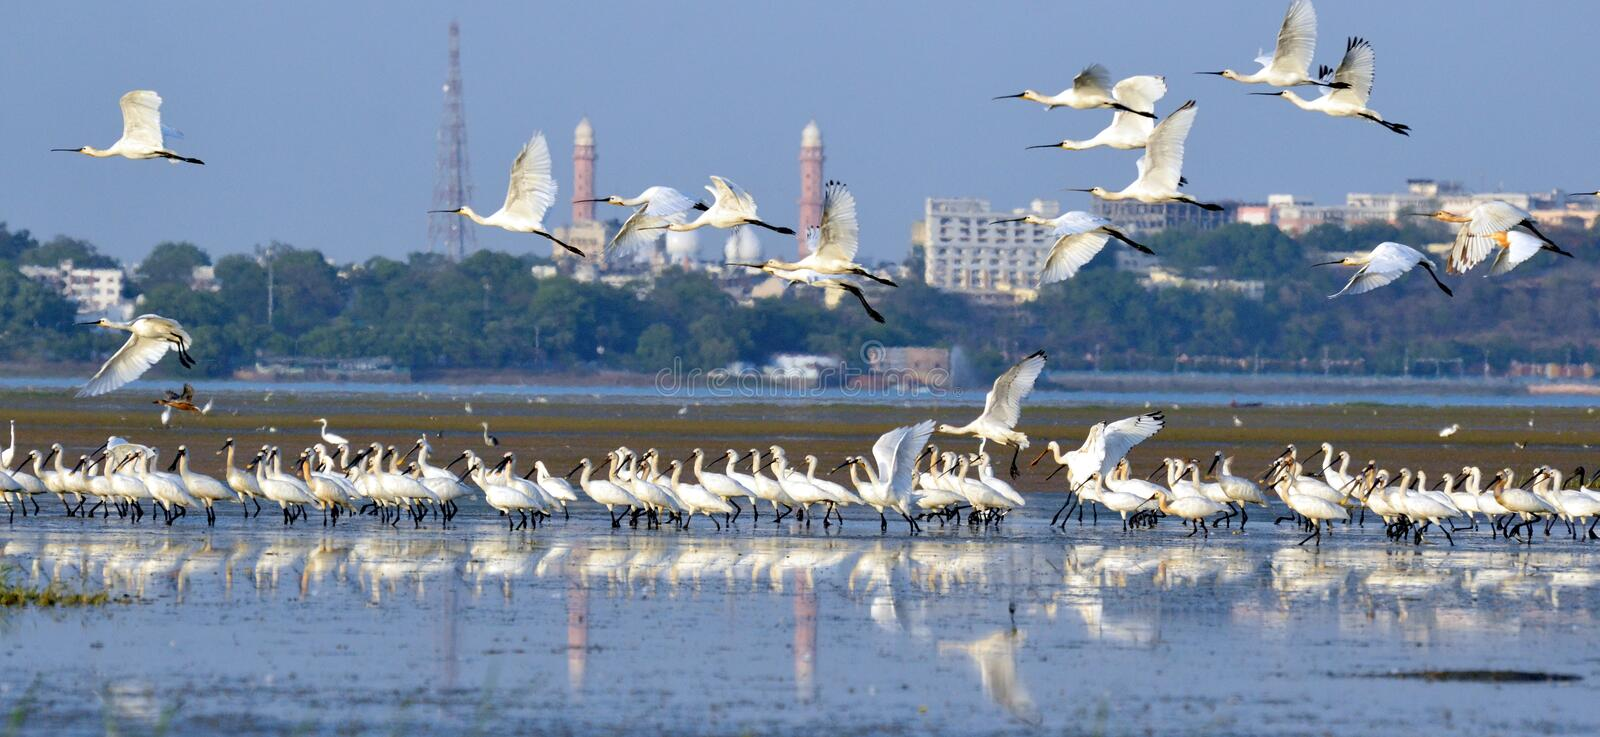 Wild life in city of lake. Bhopal, the capital city of madhya pradesh state, India which is known for worst industrial disaster, Bhopal Gas tragedy , Now famous royalty free stock photography